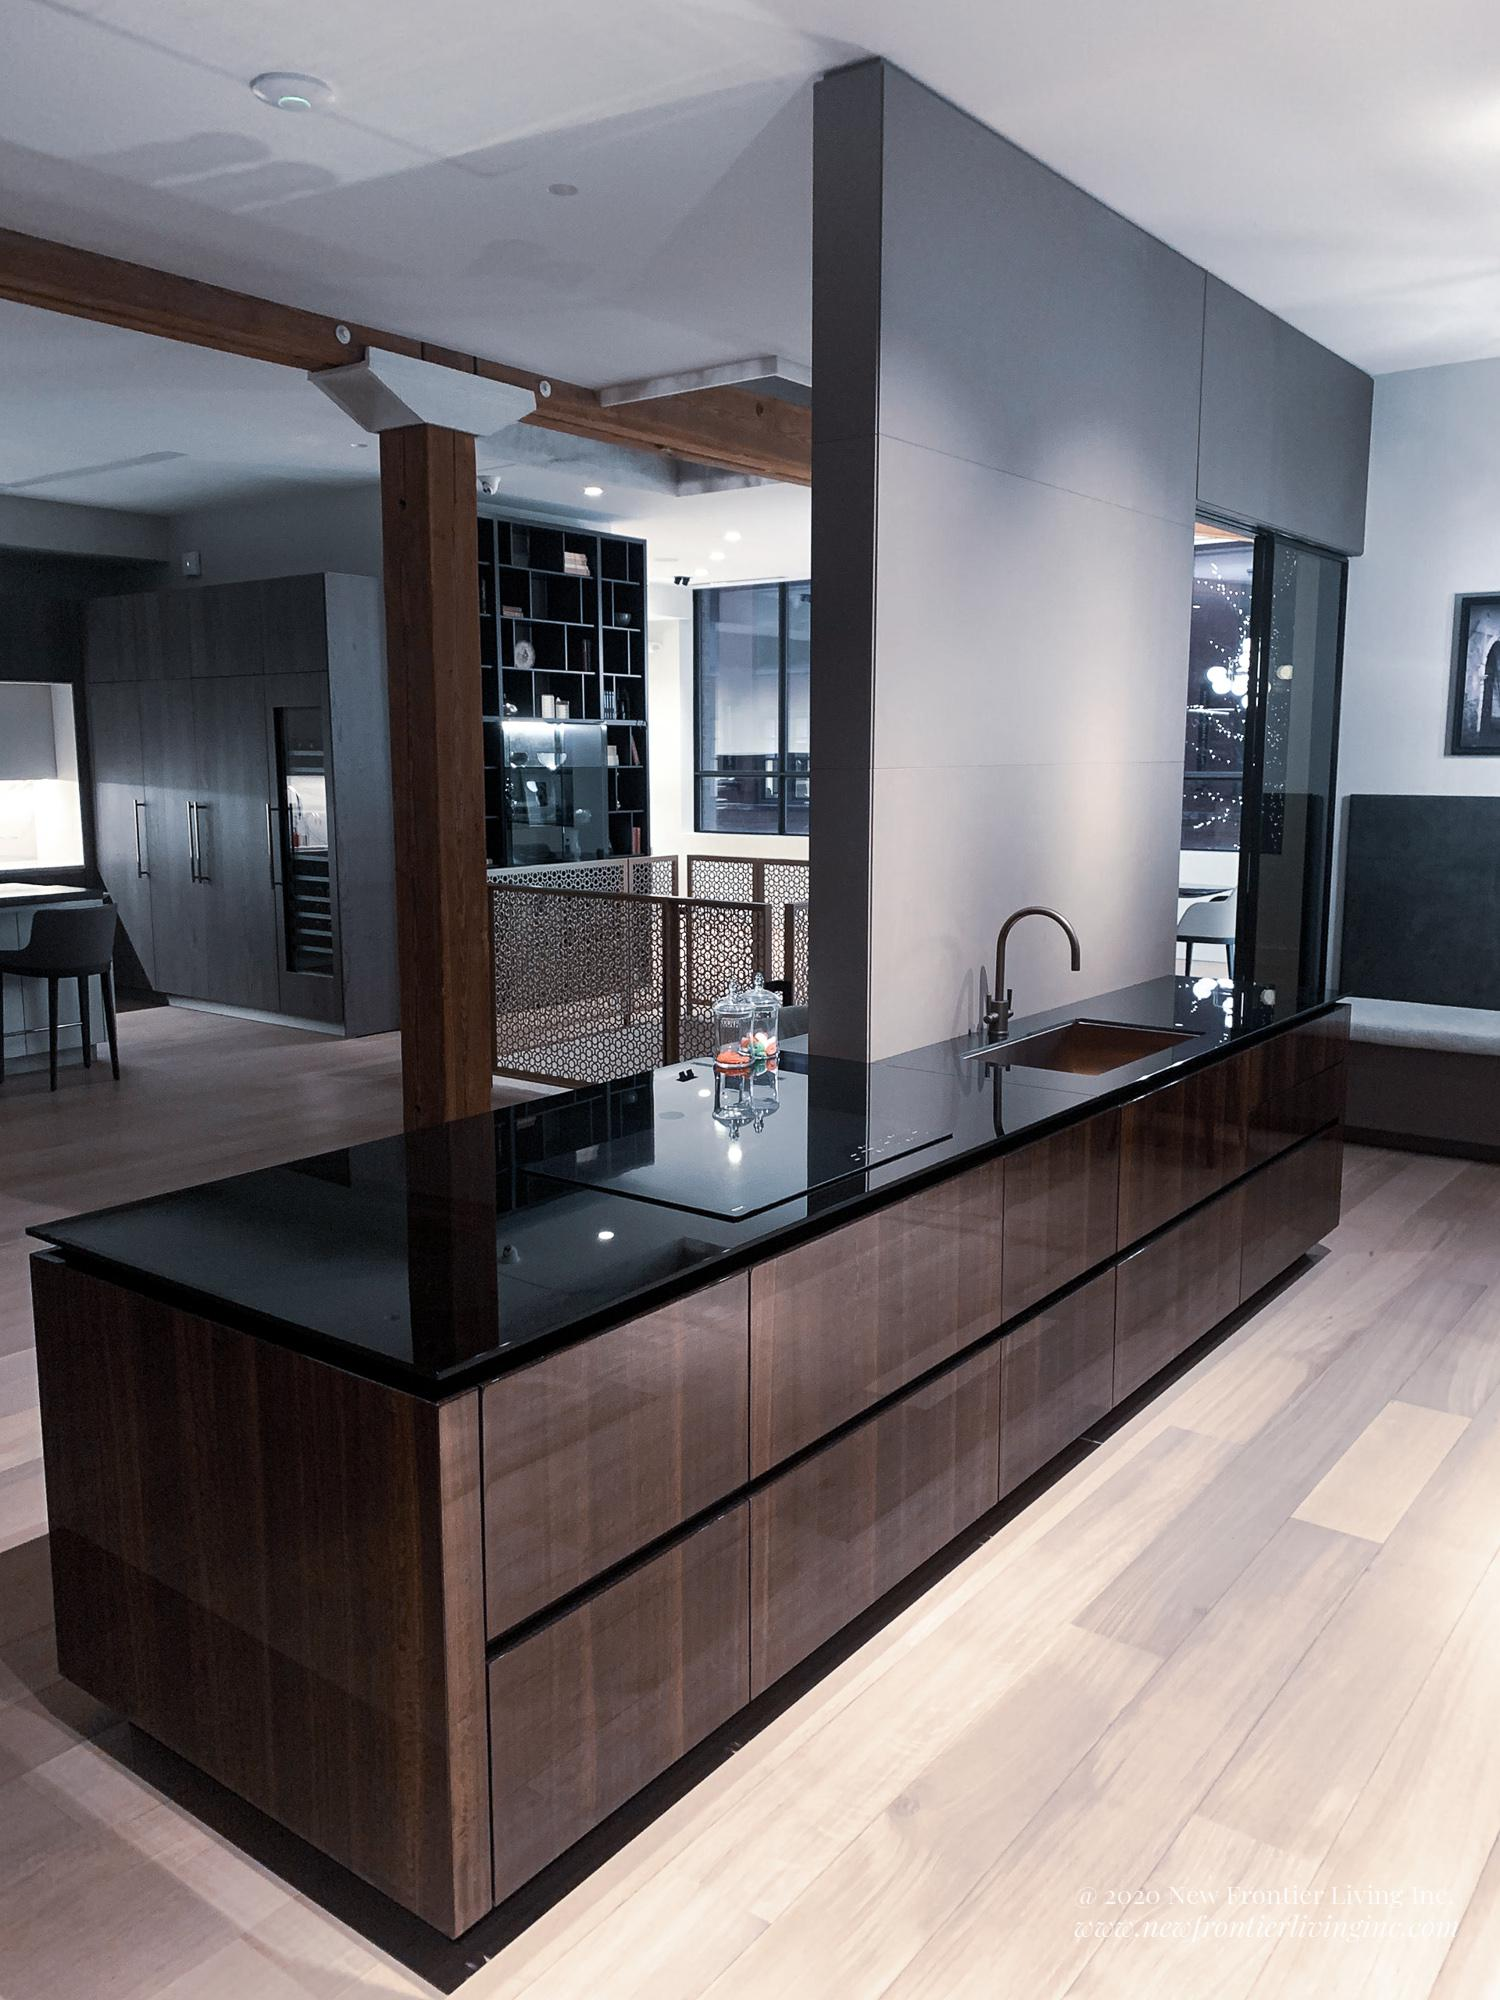 Black and Brown glossy kitchen with black countertop and light wooden floor